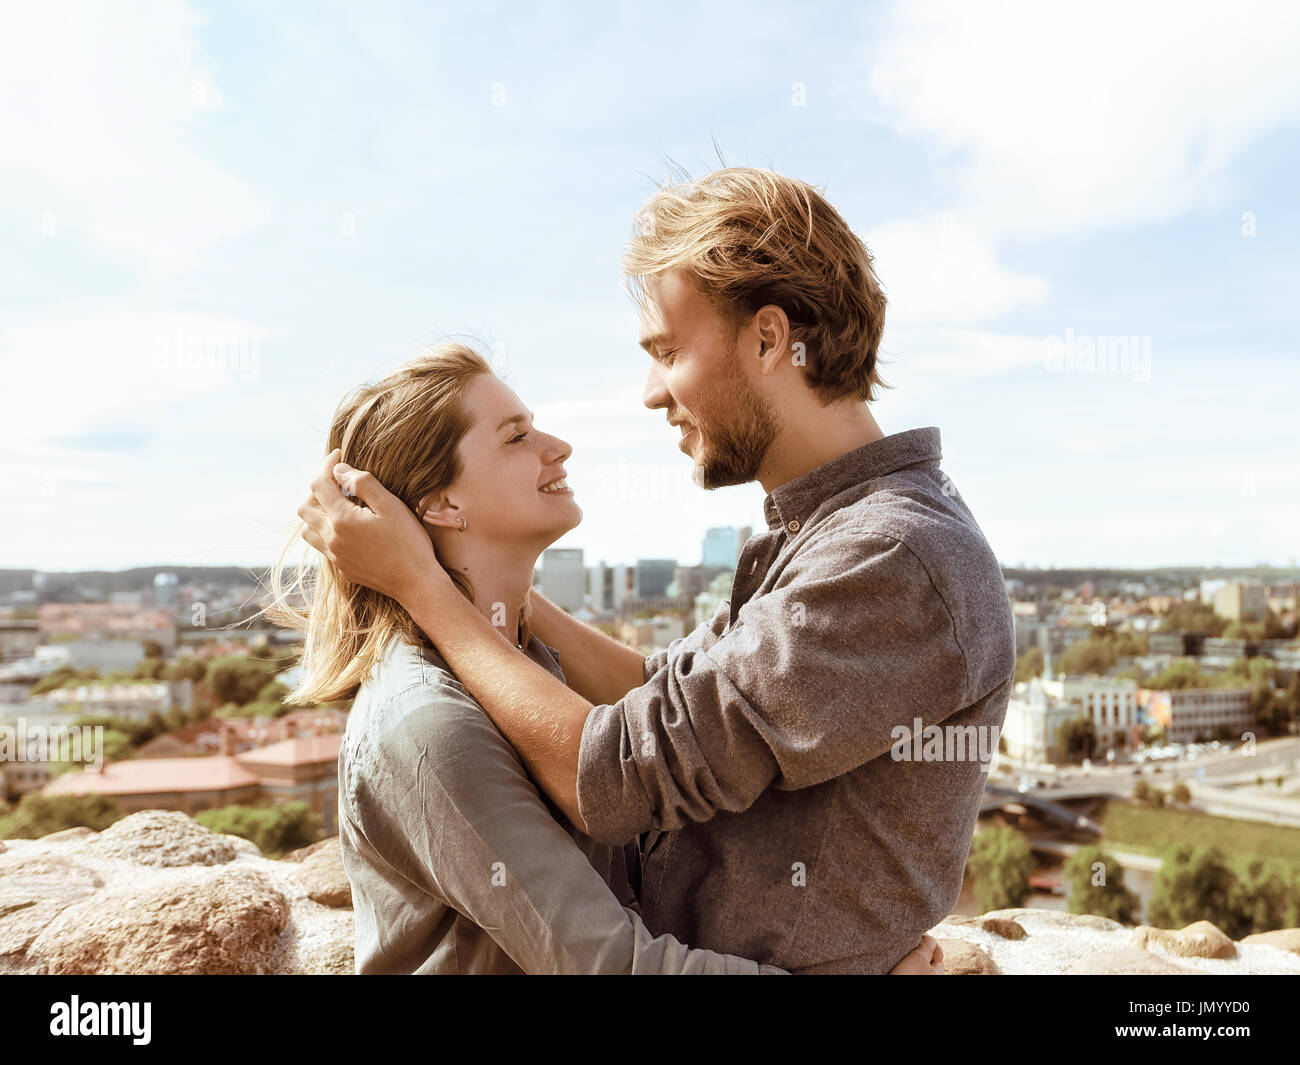 Young couple looking tenderly at each other in front of city skyline. Romantic concept - Stock Image